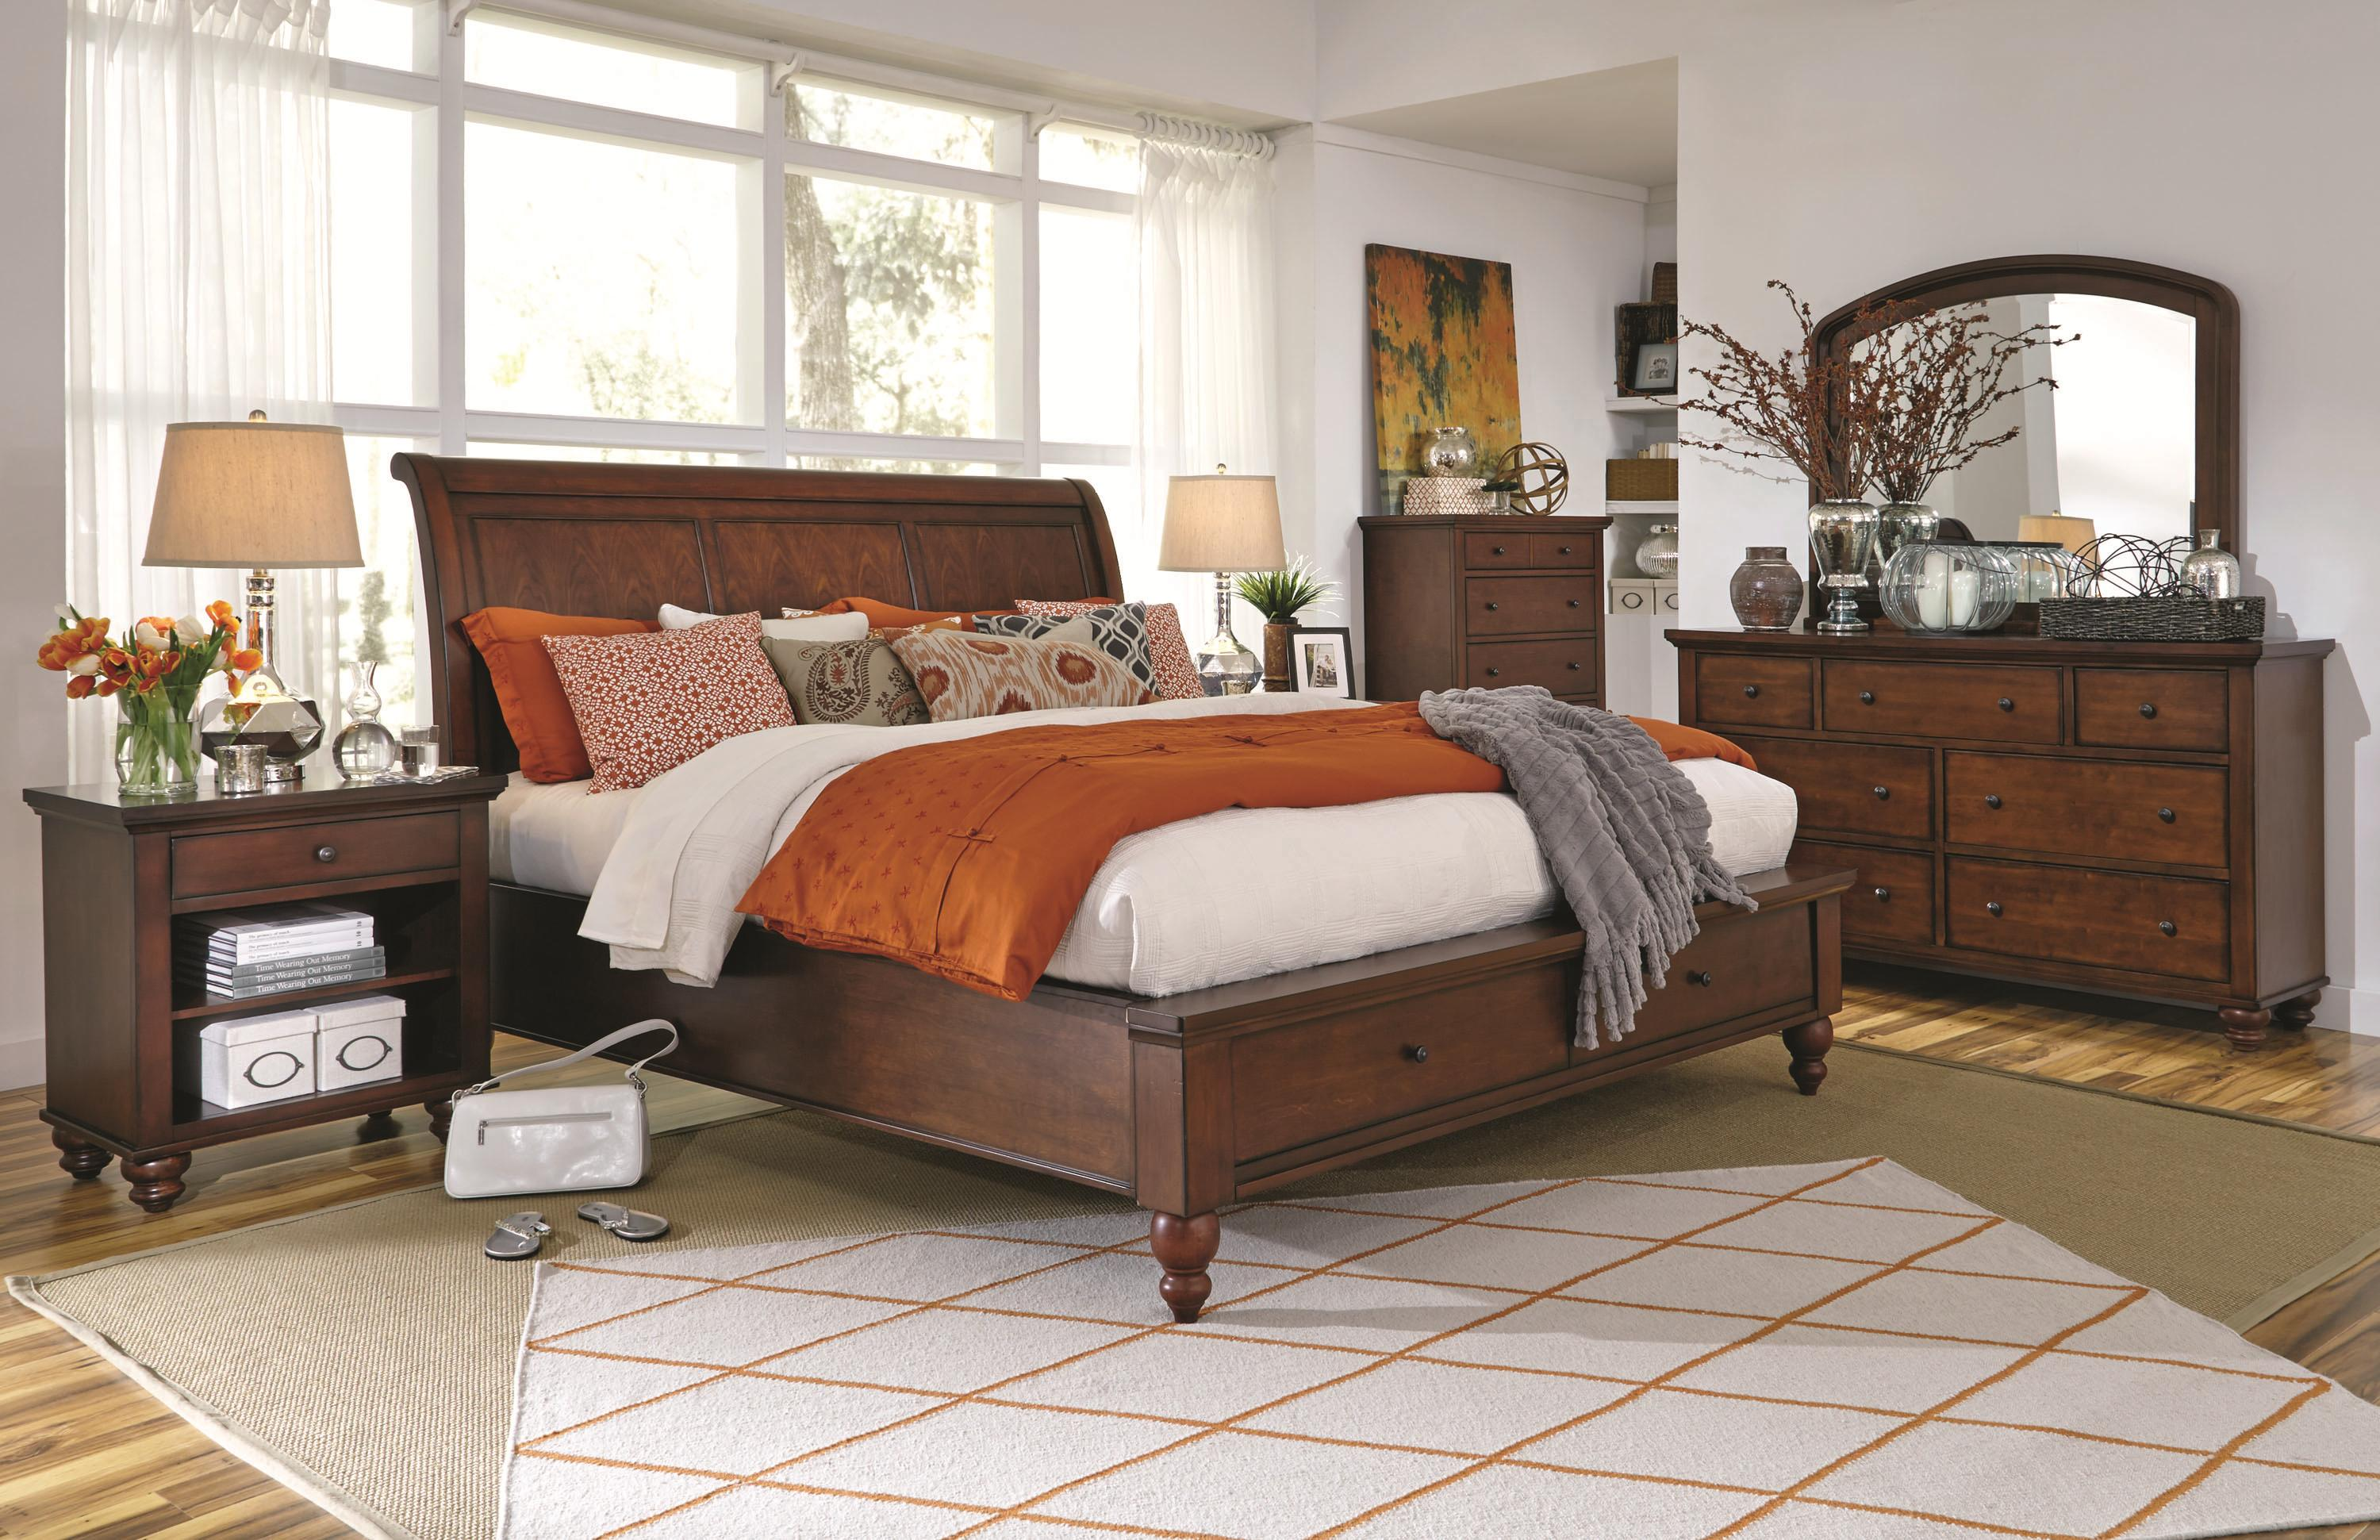 Aspenhome Cambridge California King Bedroom Group - Item Number: CB BCH CK Bedroom Group 5